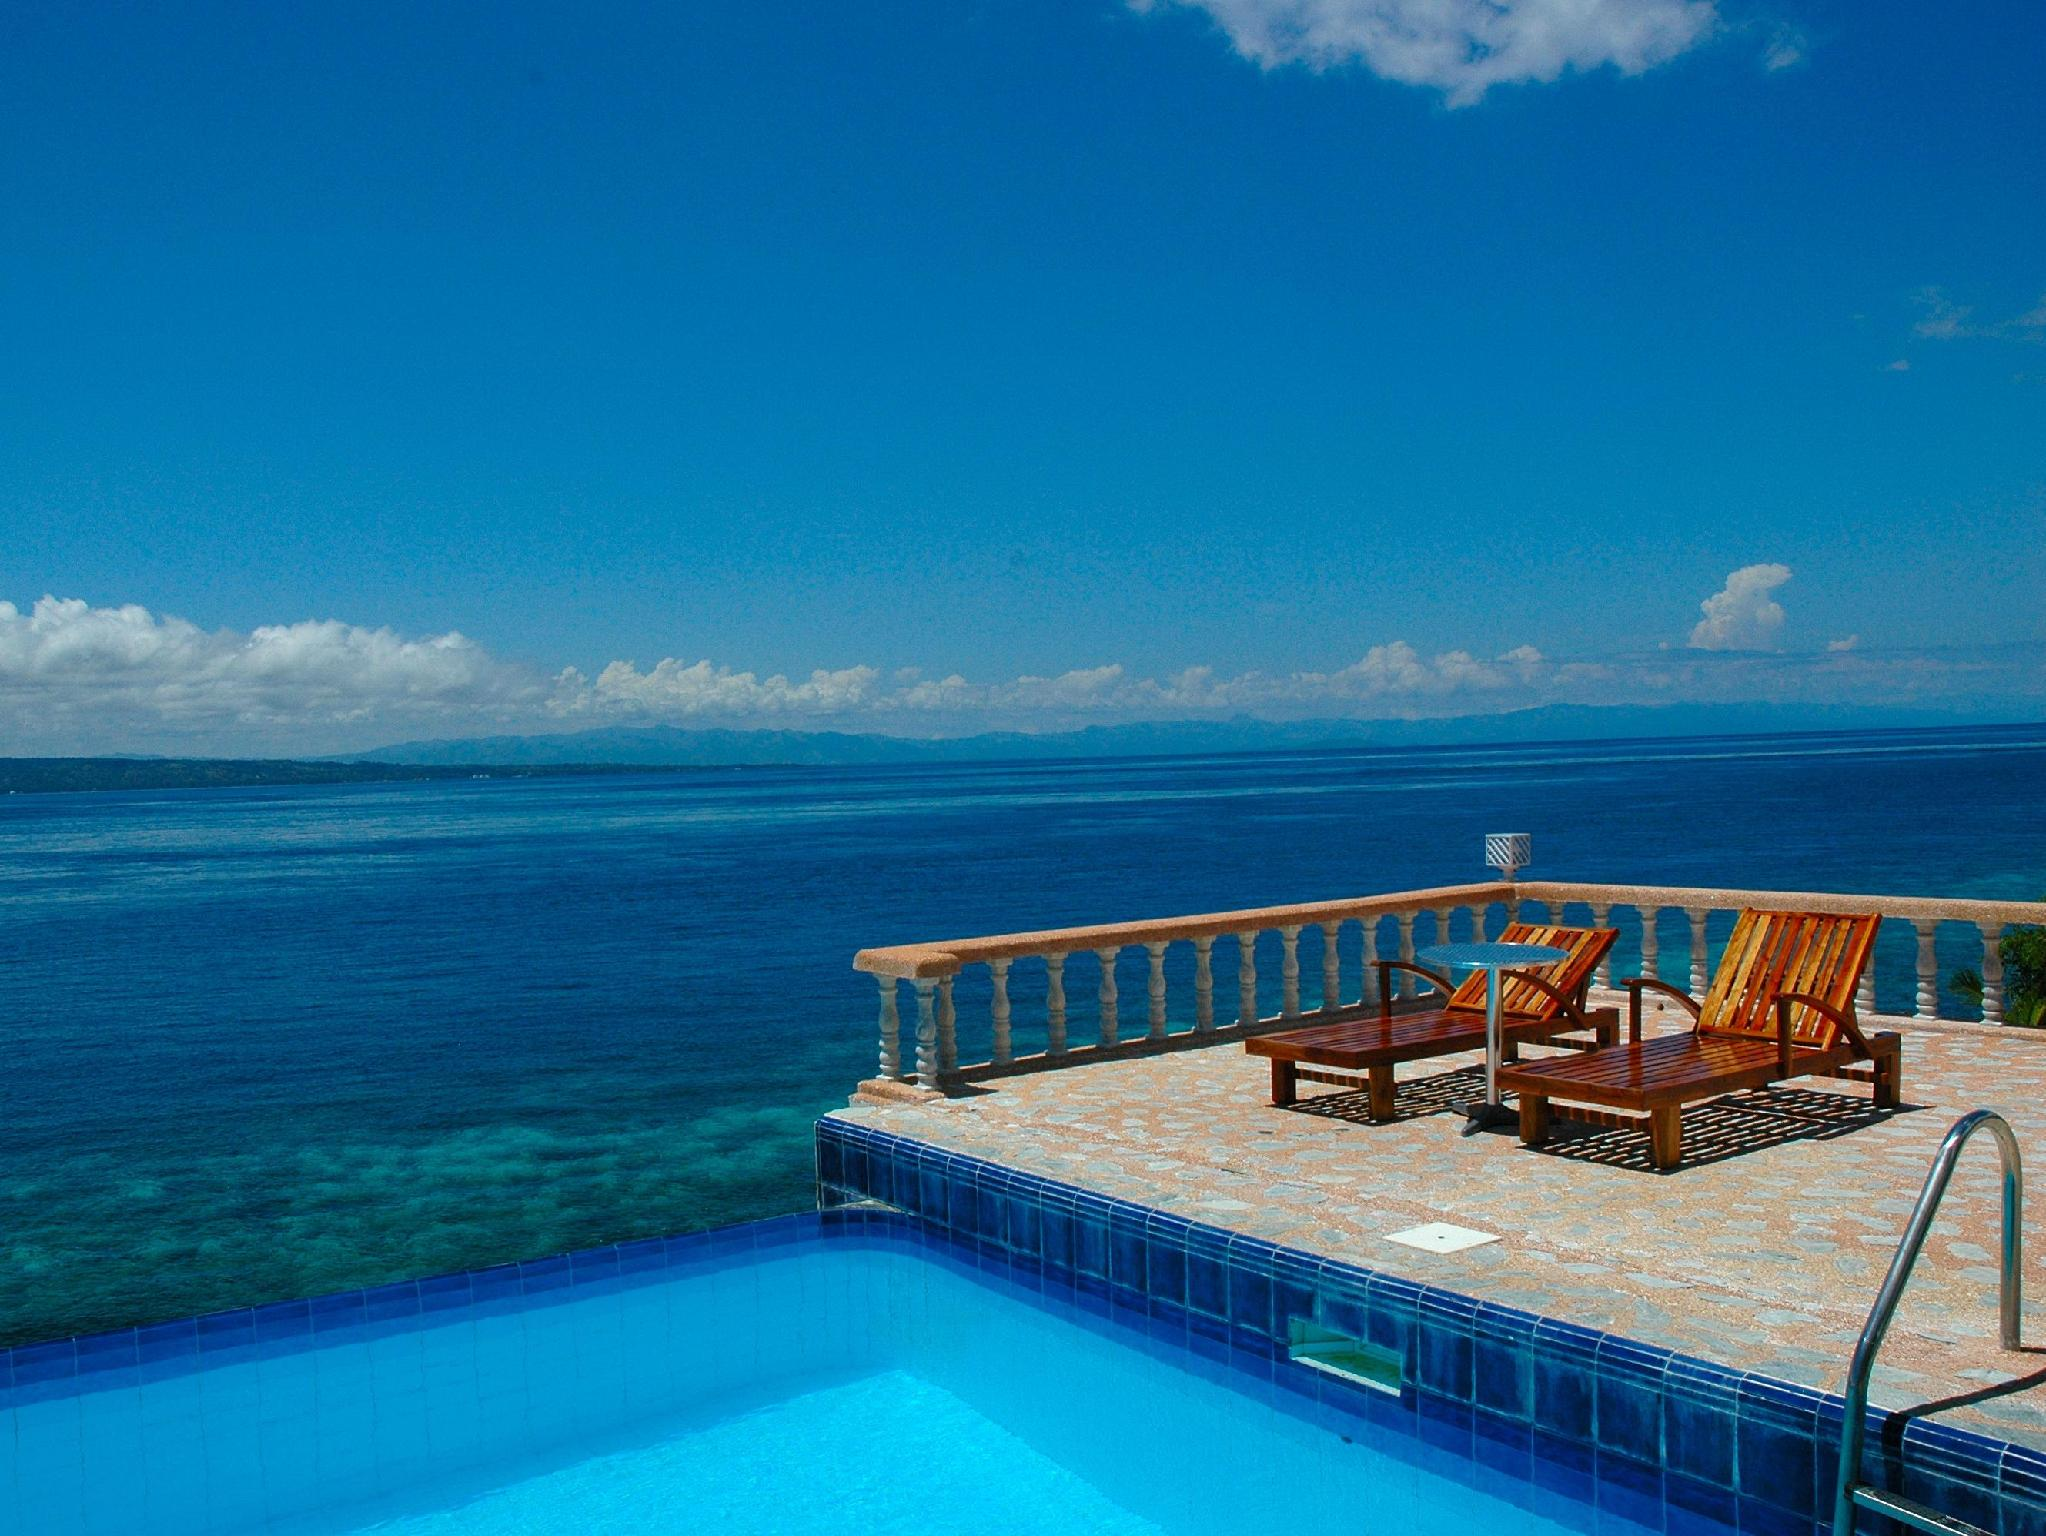 Eden Resort Cebu